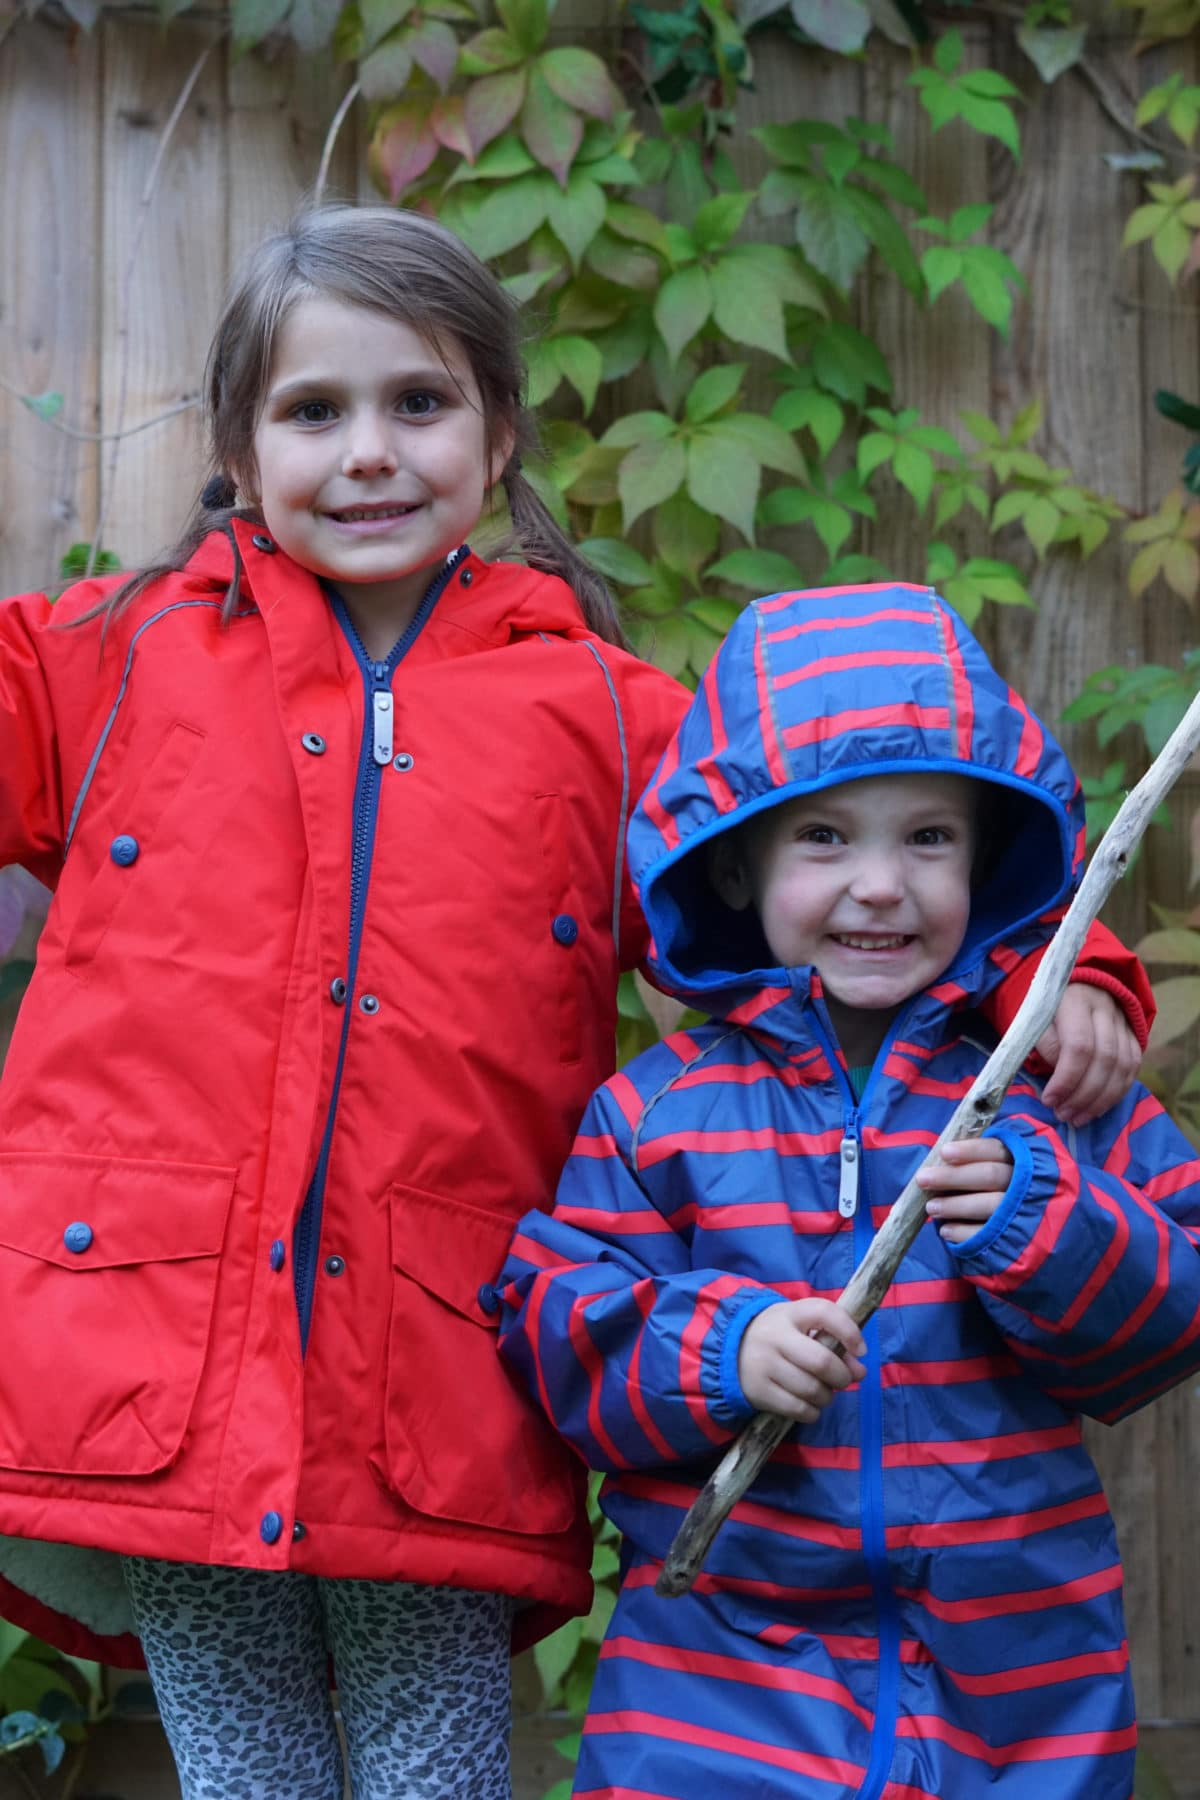 How To Get Children Outdoors - 10 Questions To Jamie of ADay In The Life Dad